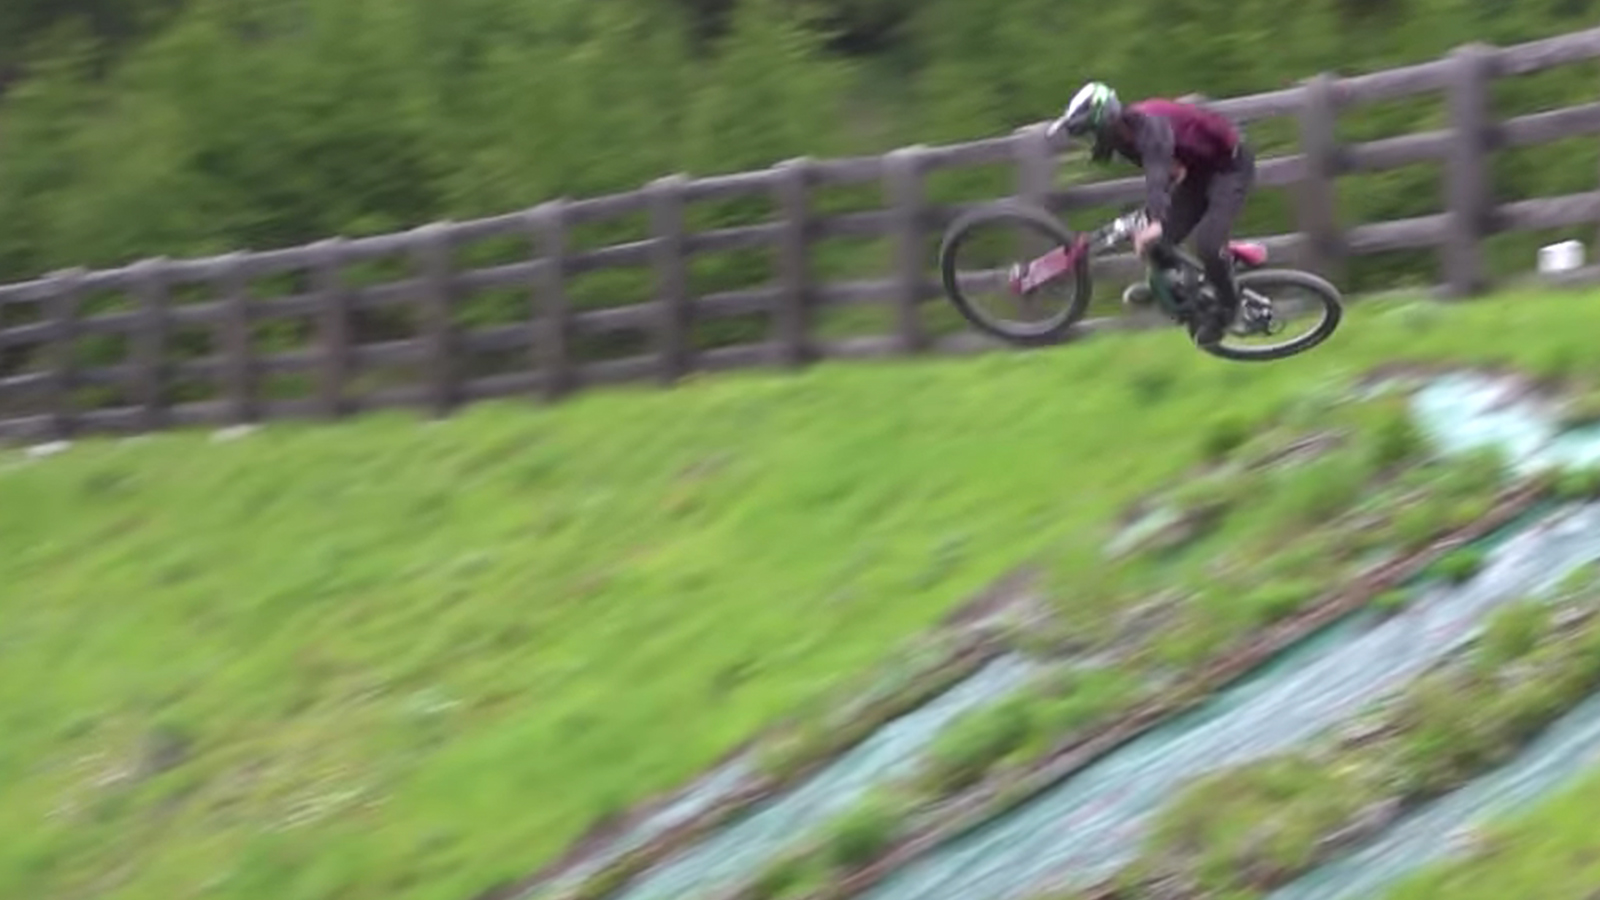 Ratboy on a Downhill Bike, What More Do You Want?